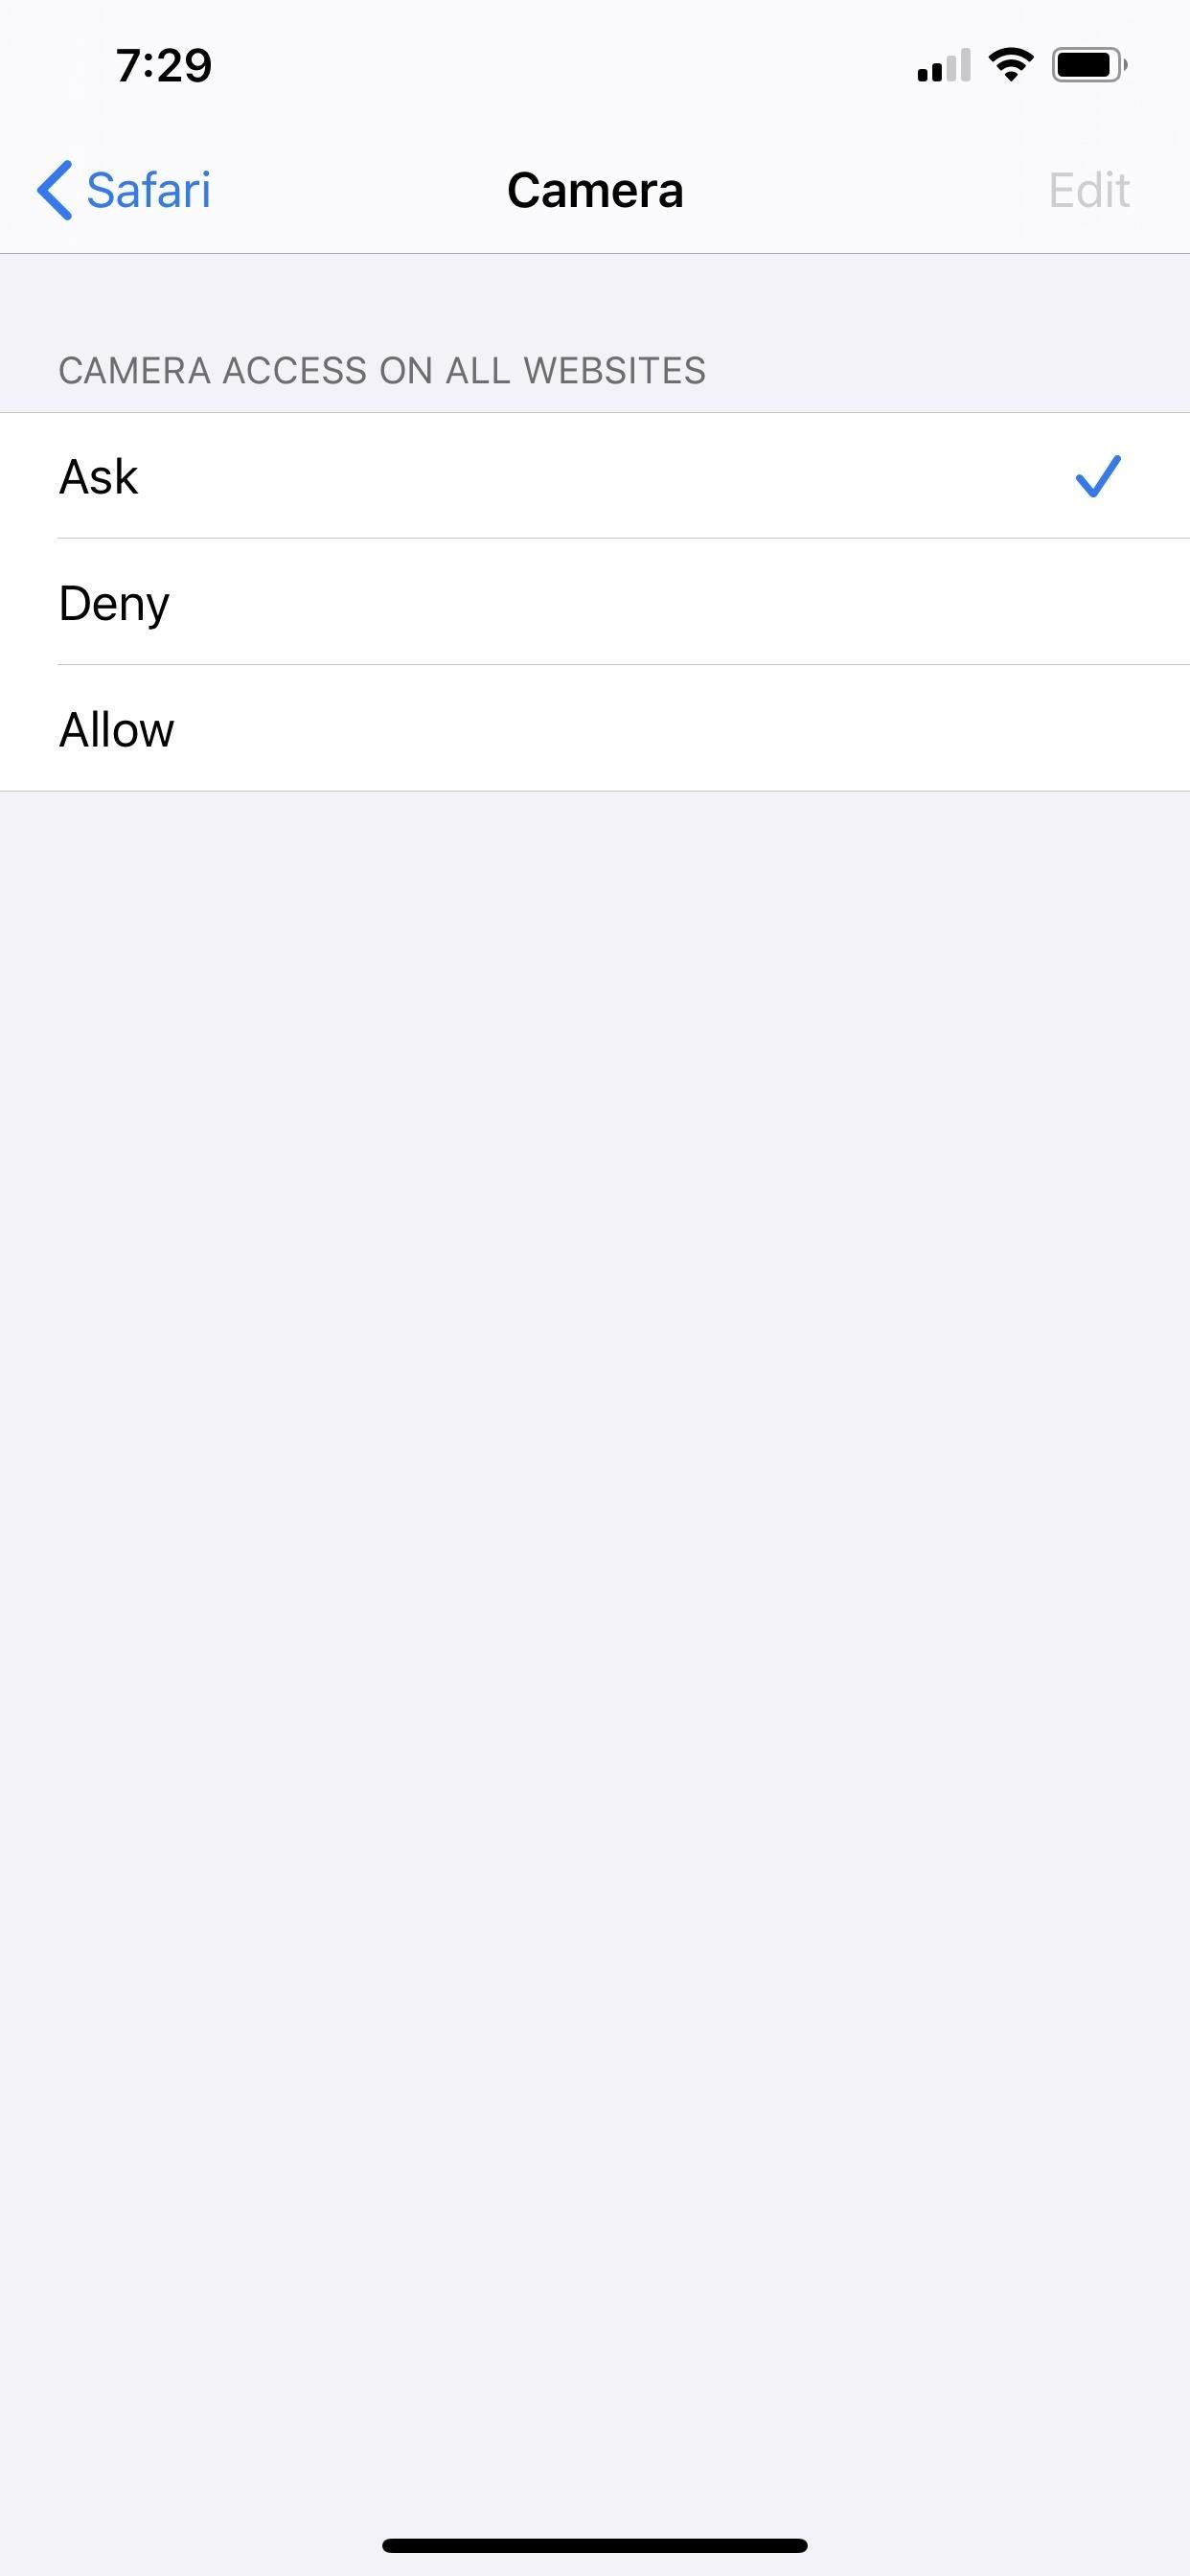 Adjusting Camera, Microphone, and Location Permissions for Certain Websites in the iOS 13 Safari